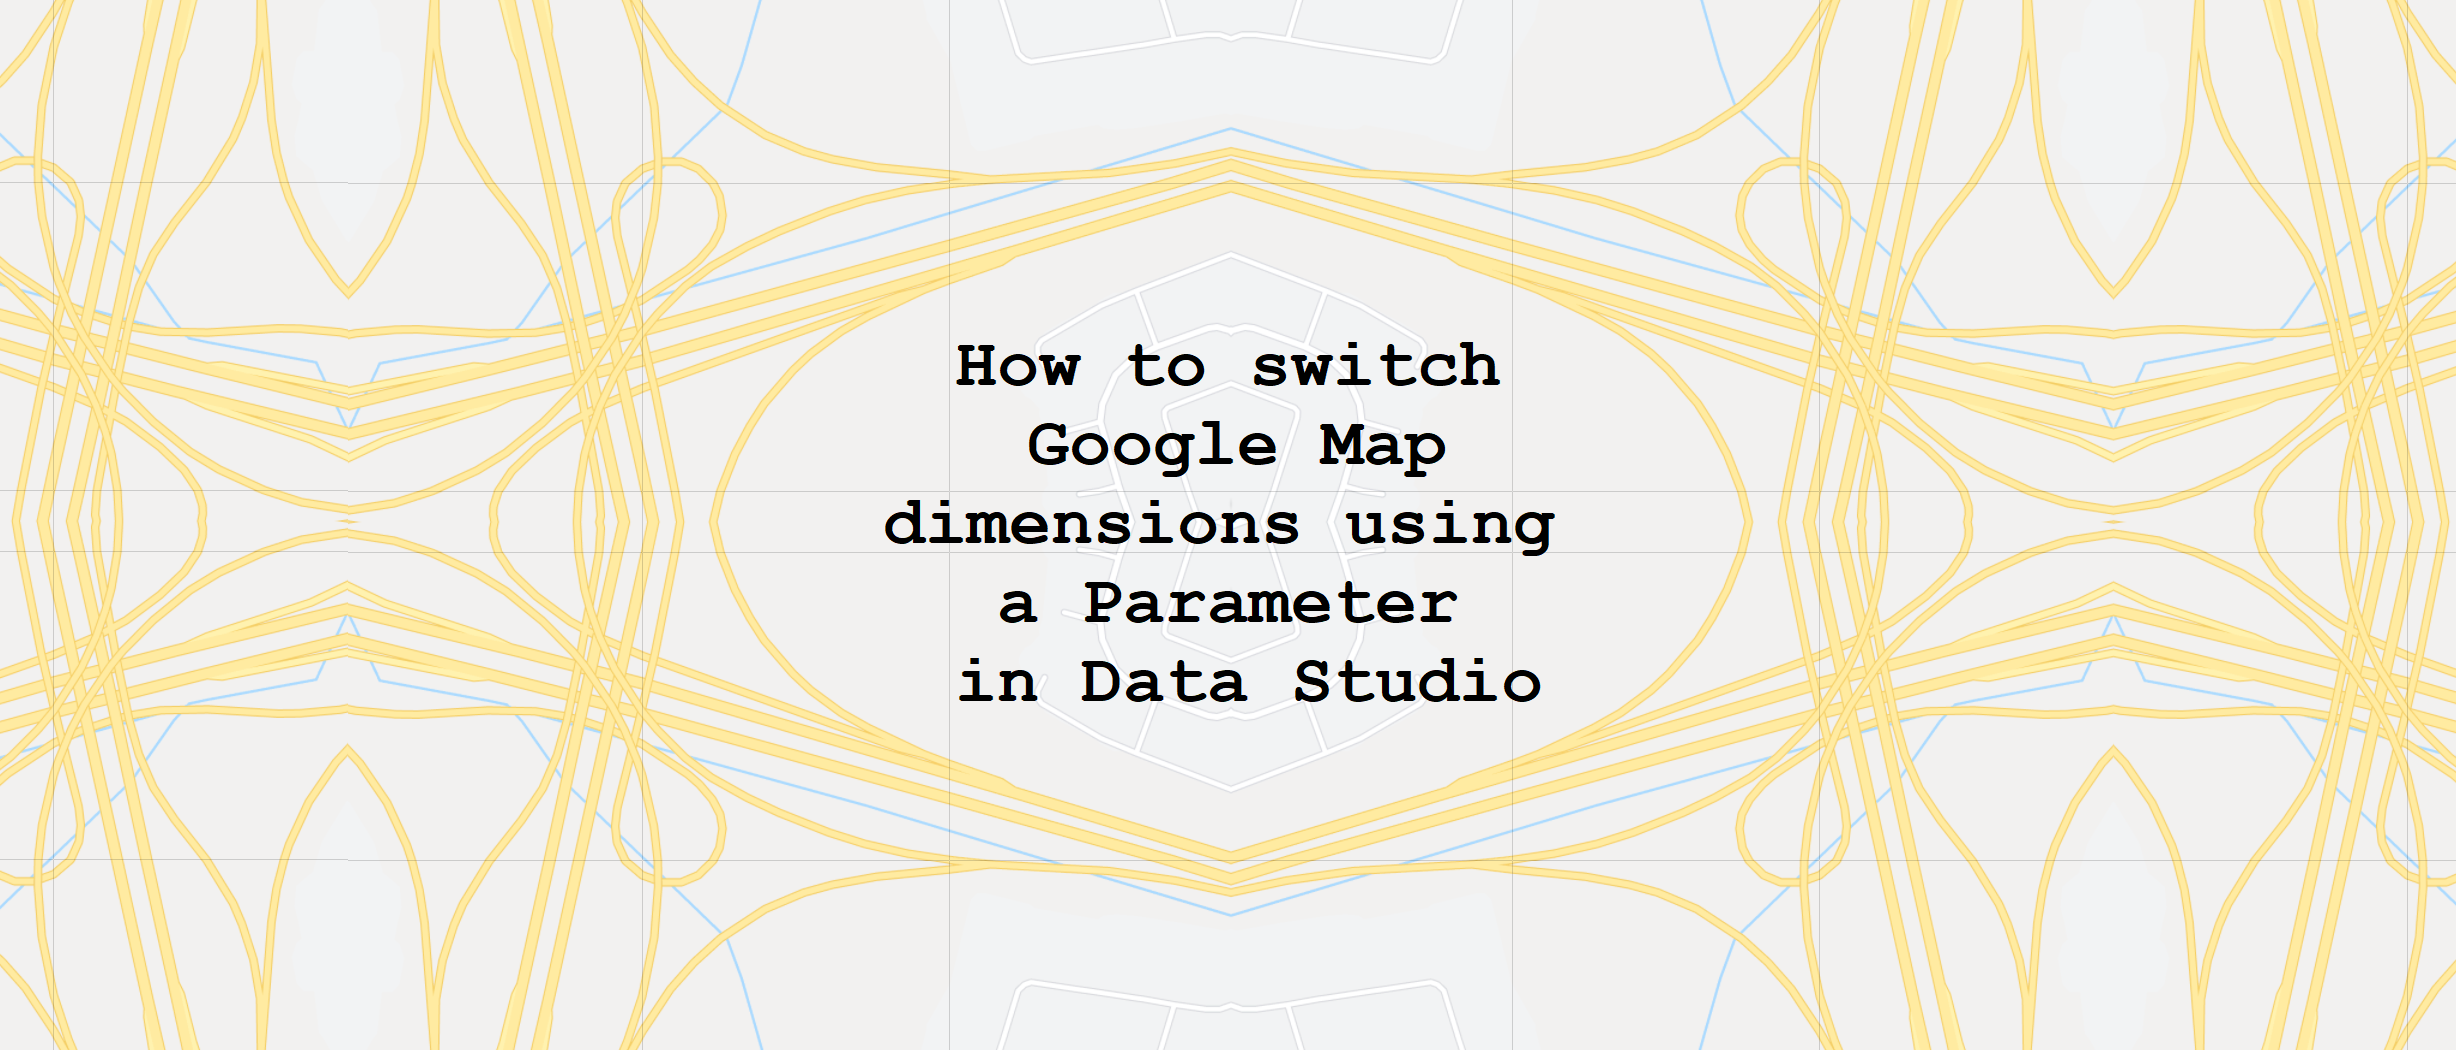 How to switch Google Map dimensions using a Parameter in Data Studio